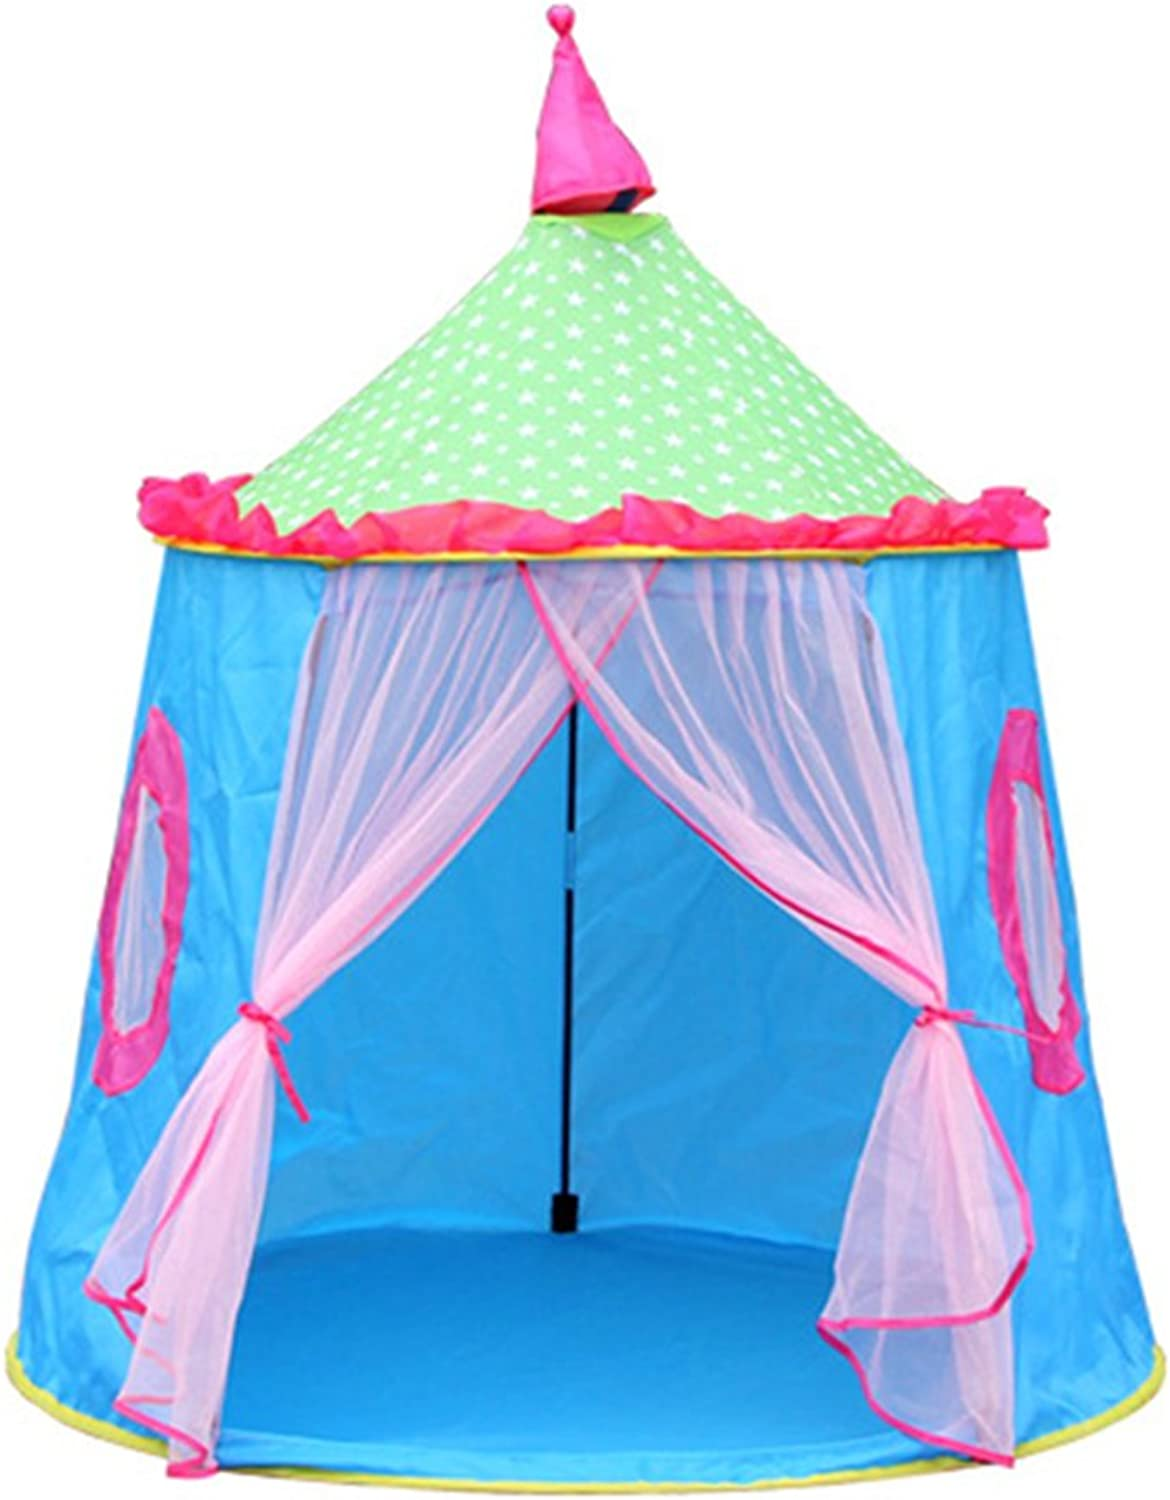 Zconmotarich Castle Foldable Kids Tent Ger Yurt Indoor Outdoor Playhouse Game House